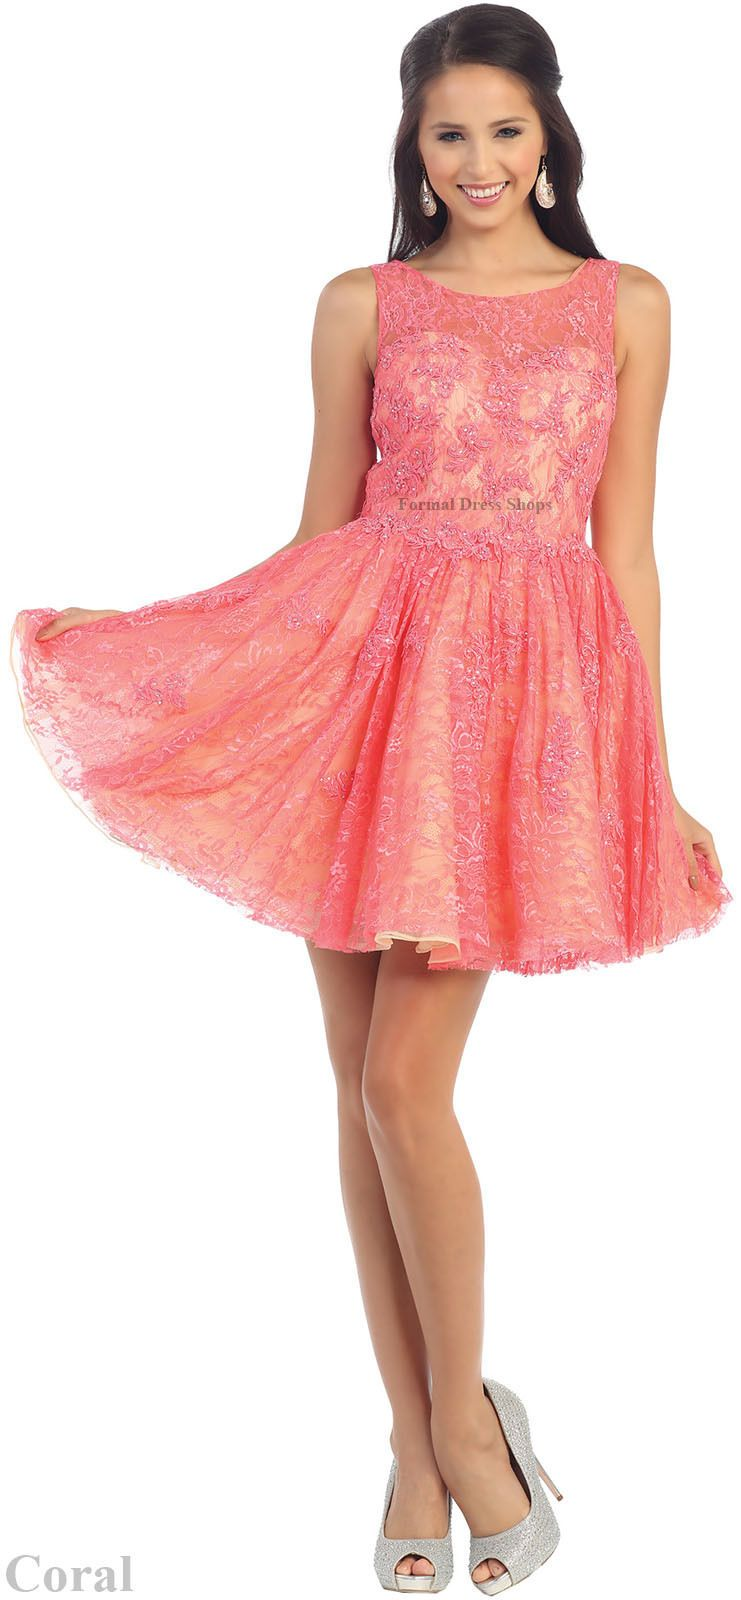 SALE ! PROM HOMECOMING GRADUATION PARTY SHORT COCKTAIL CRUISE DRESS ...